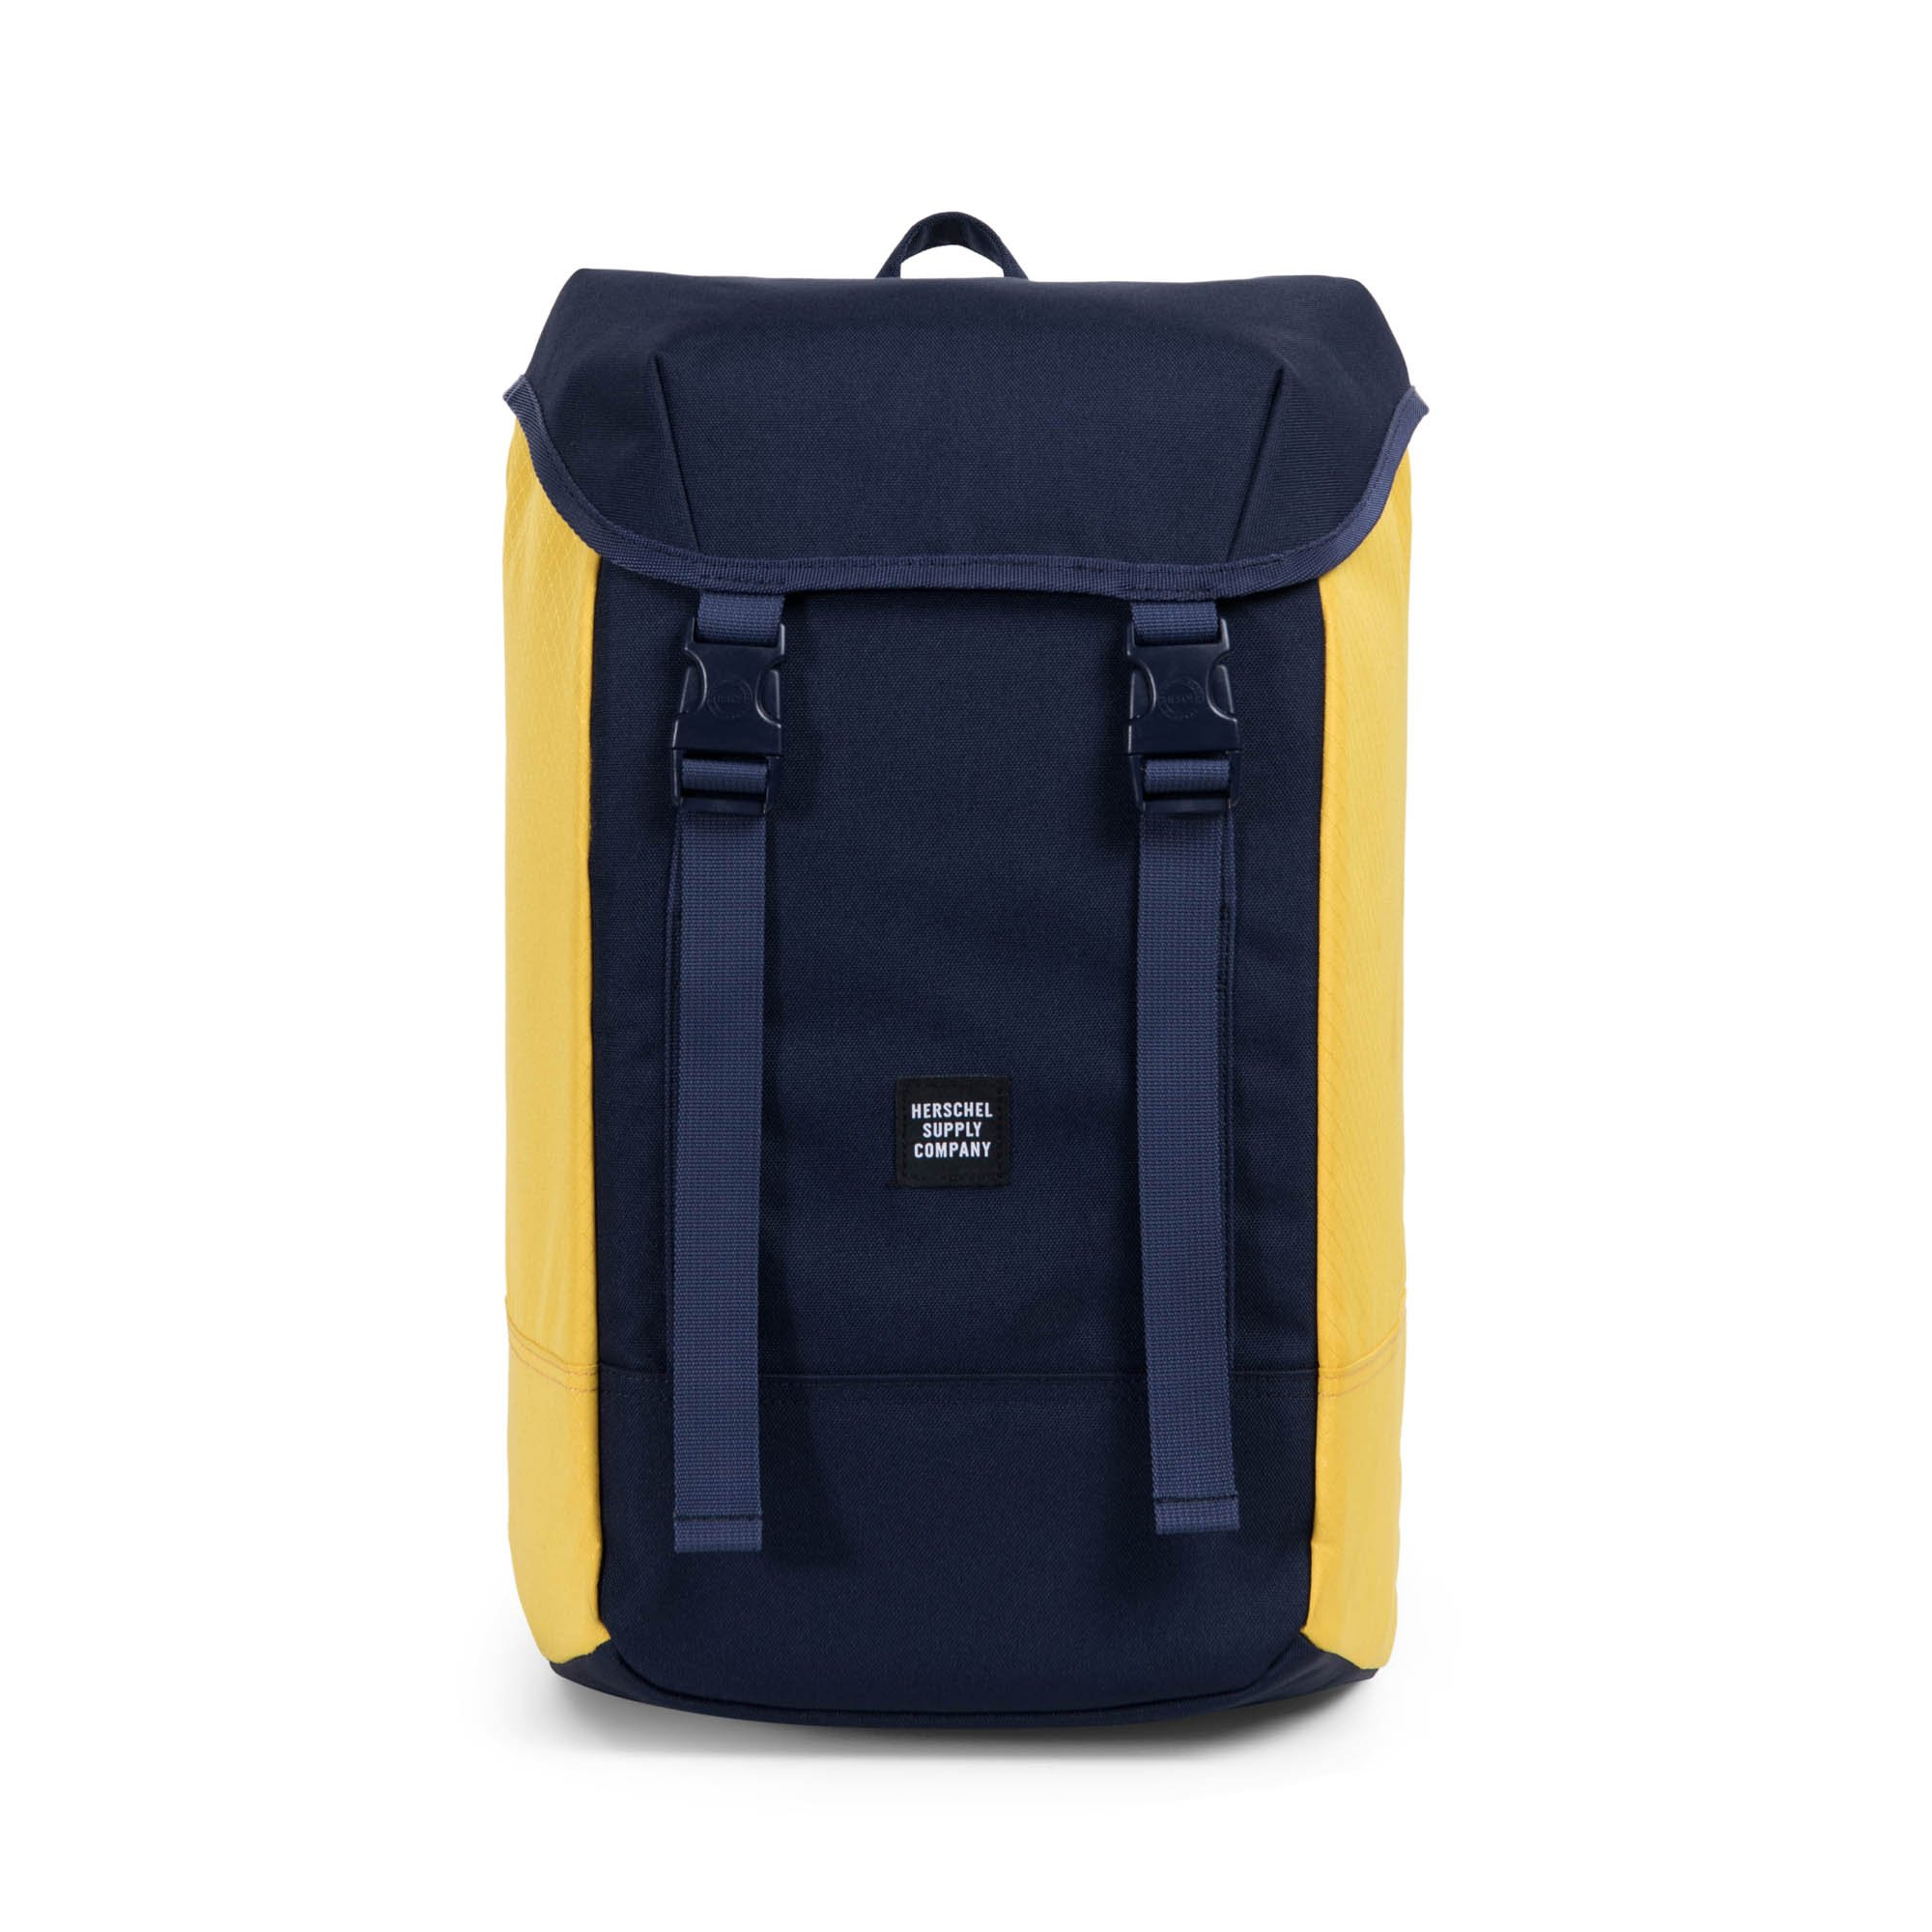 Herschel Supply Co. Iona Backpack, Peacoat/Cyber Yellow